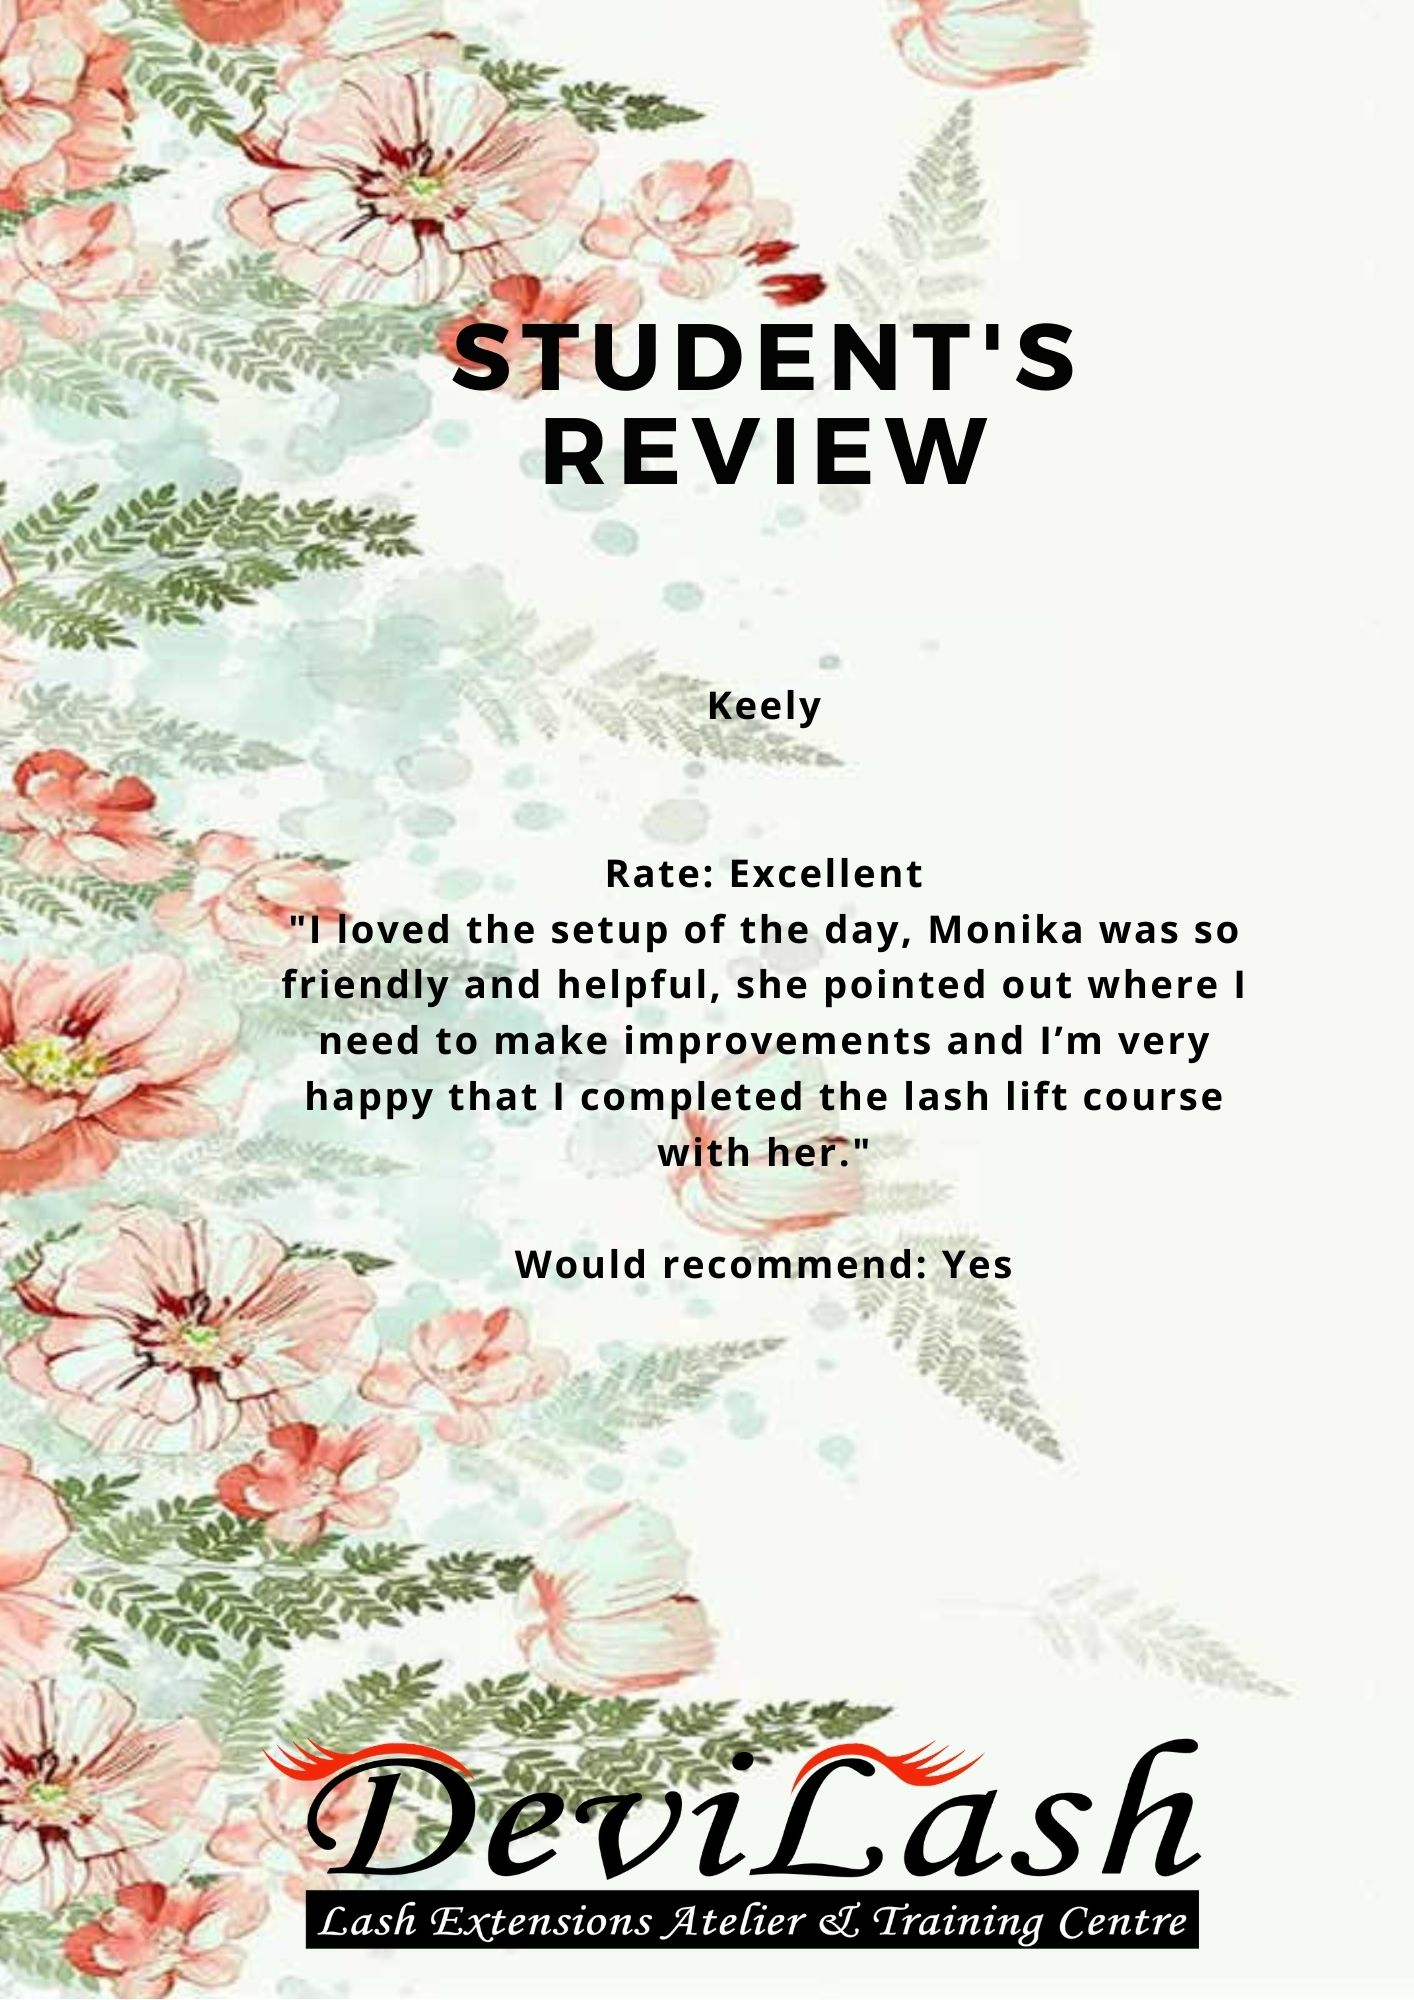 Copy of Student's Review